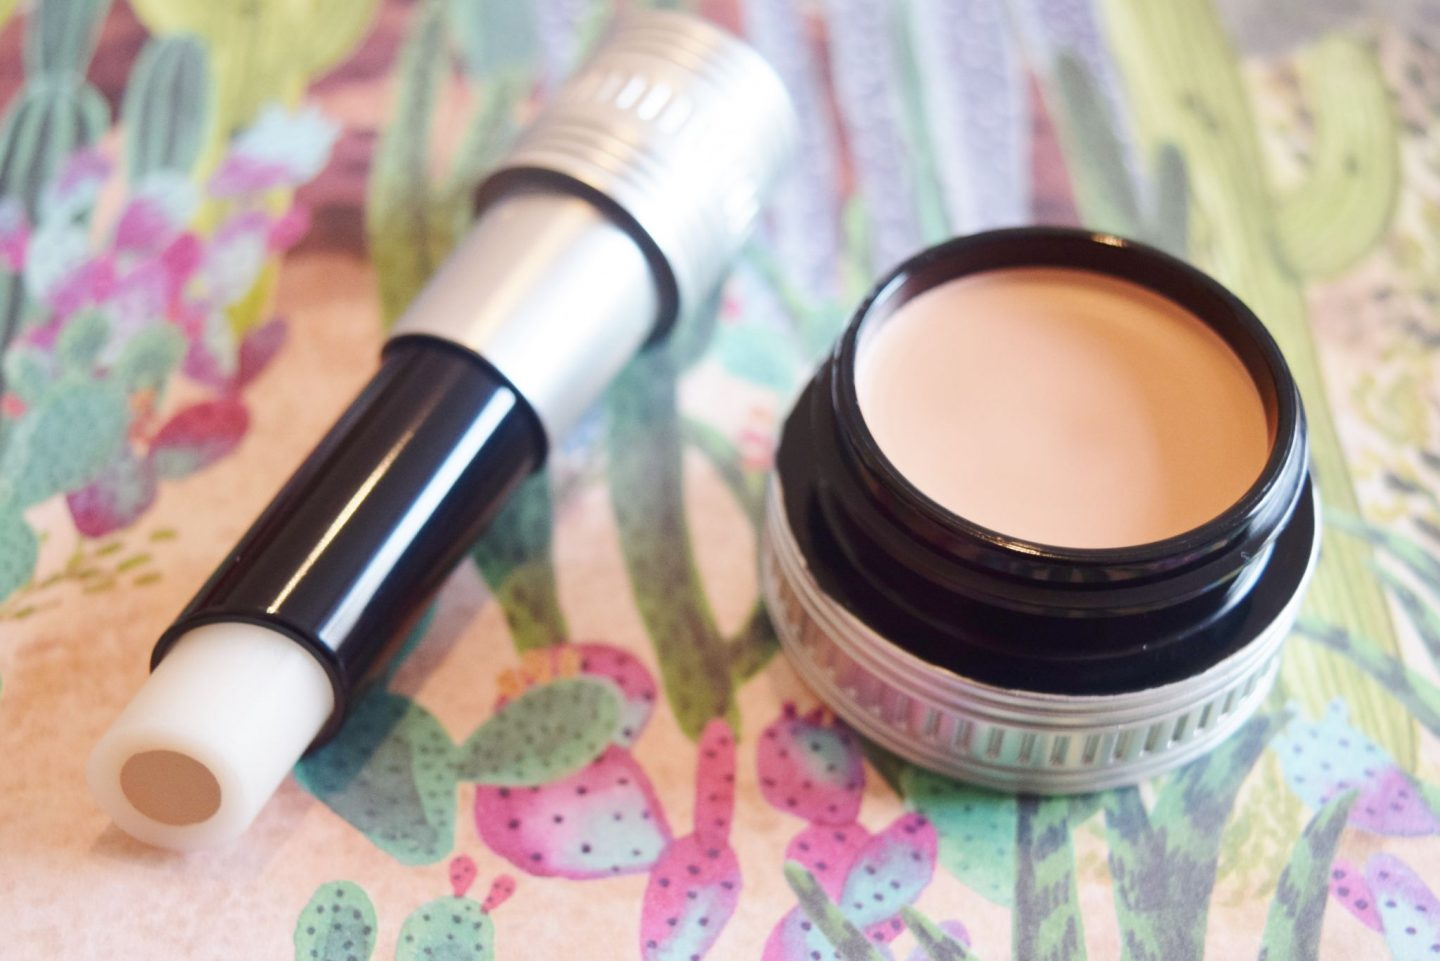 Benefit cosmetics hydrating concealer